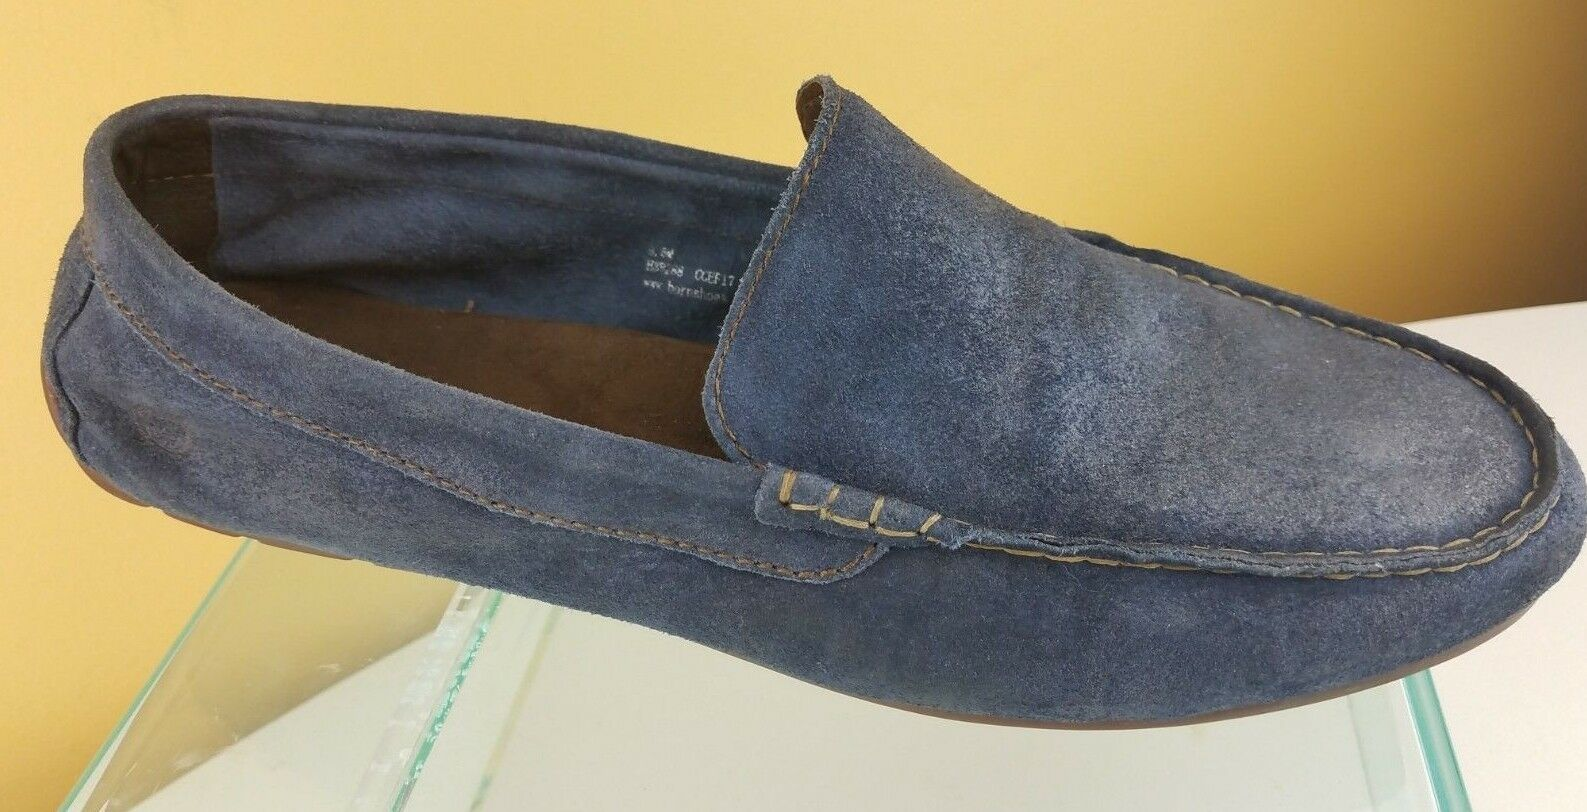 Born Men's Blue Driving Suede Leather Slip On Driving Blue Moccasin Oxford Loafers Size 9.5M b4cb60